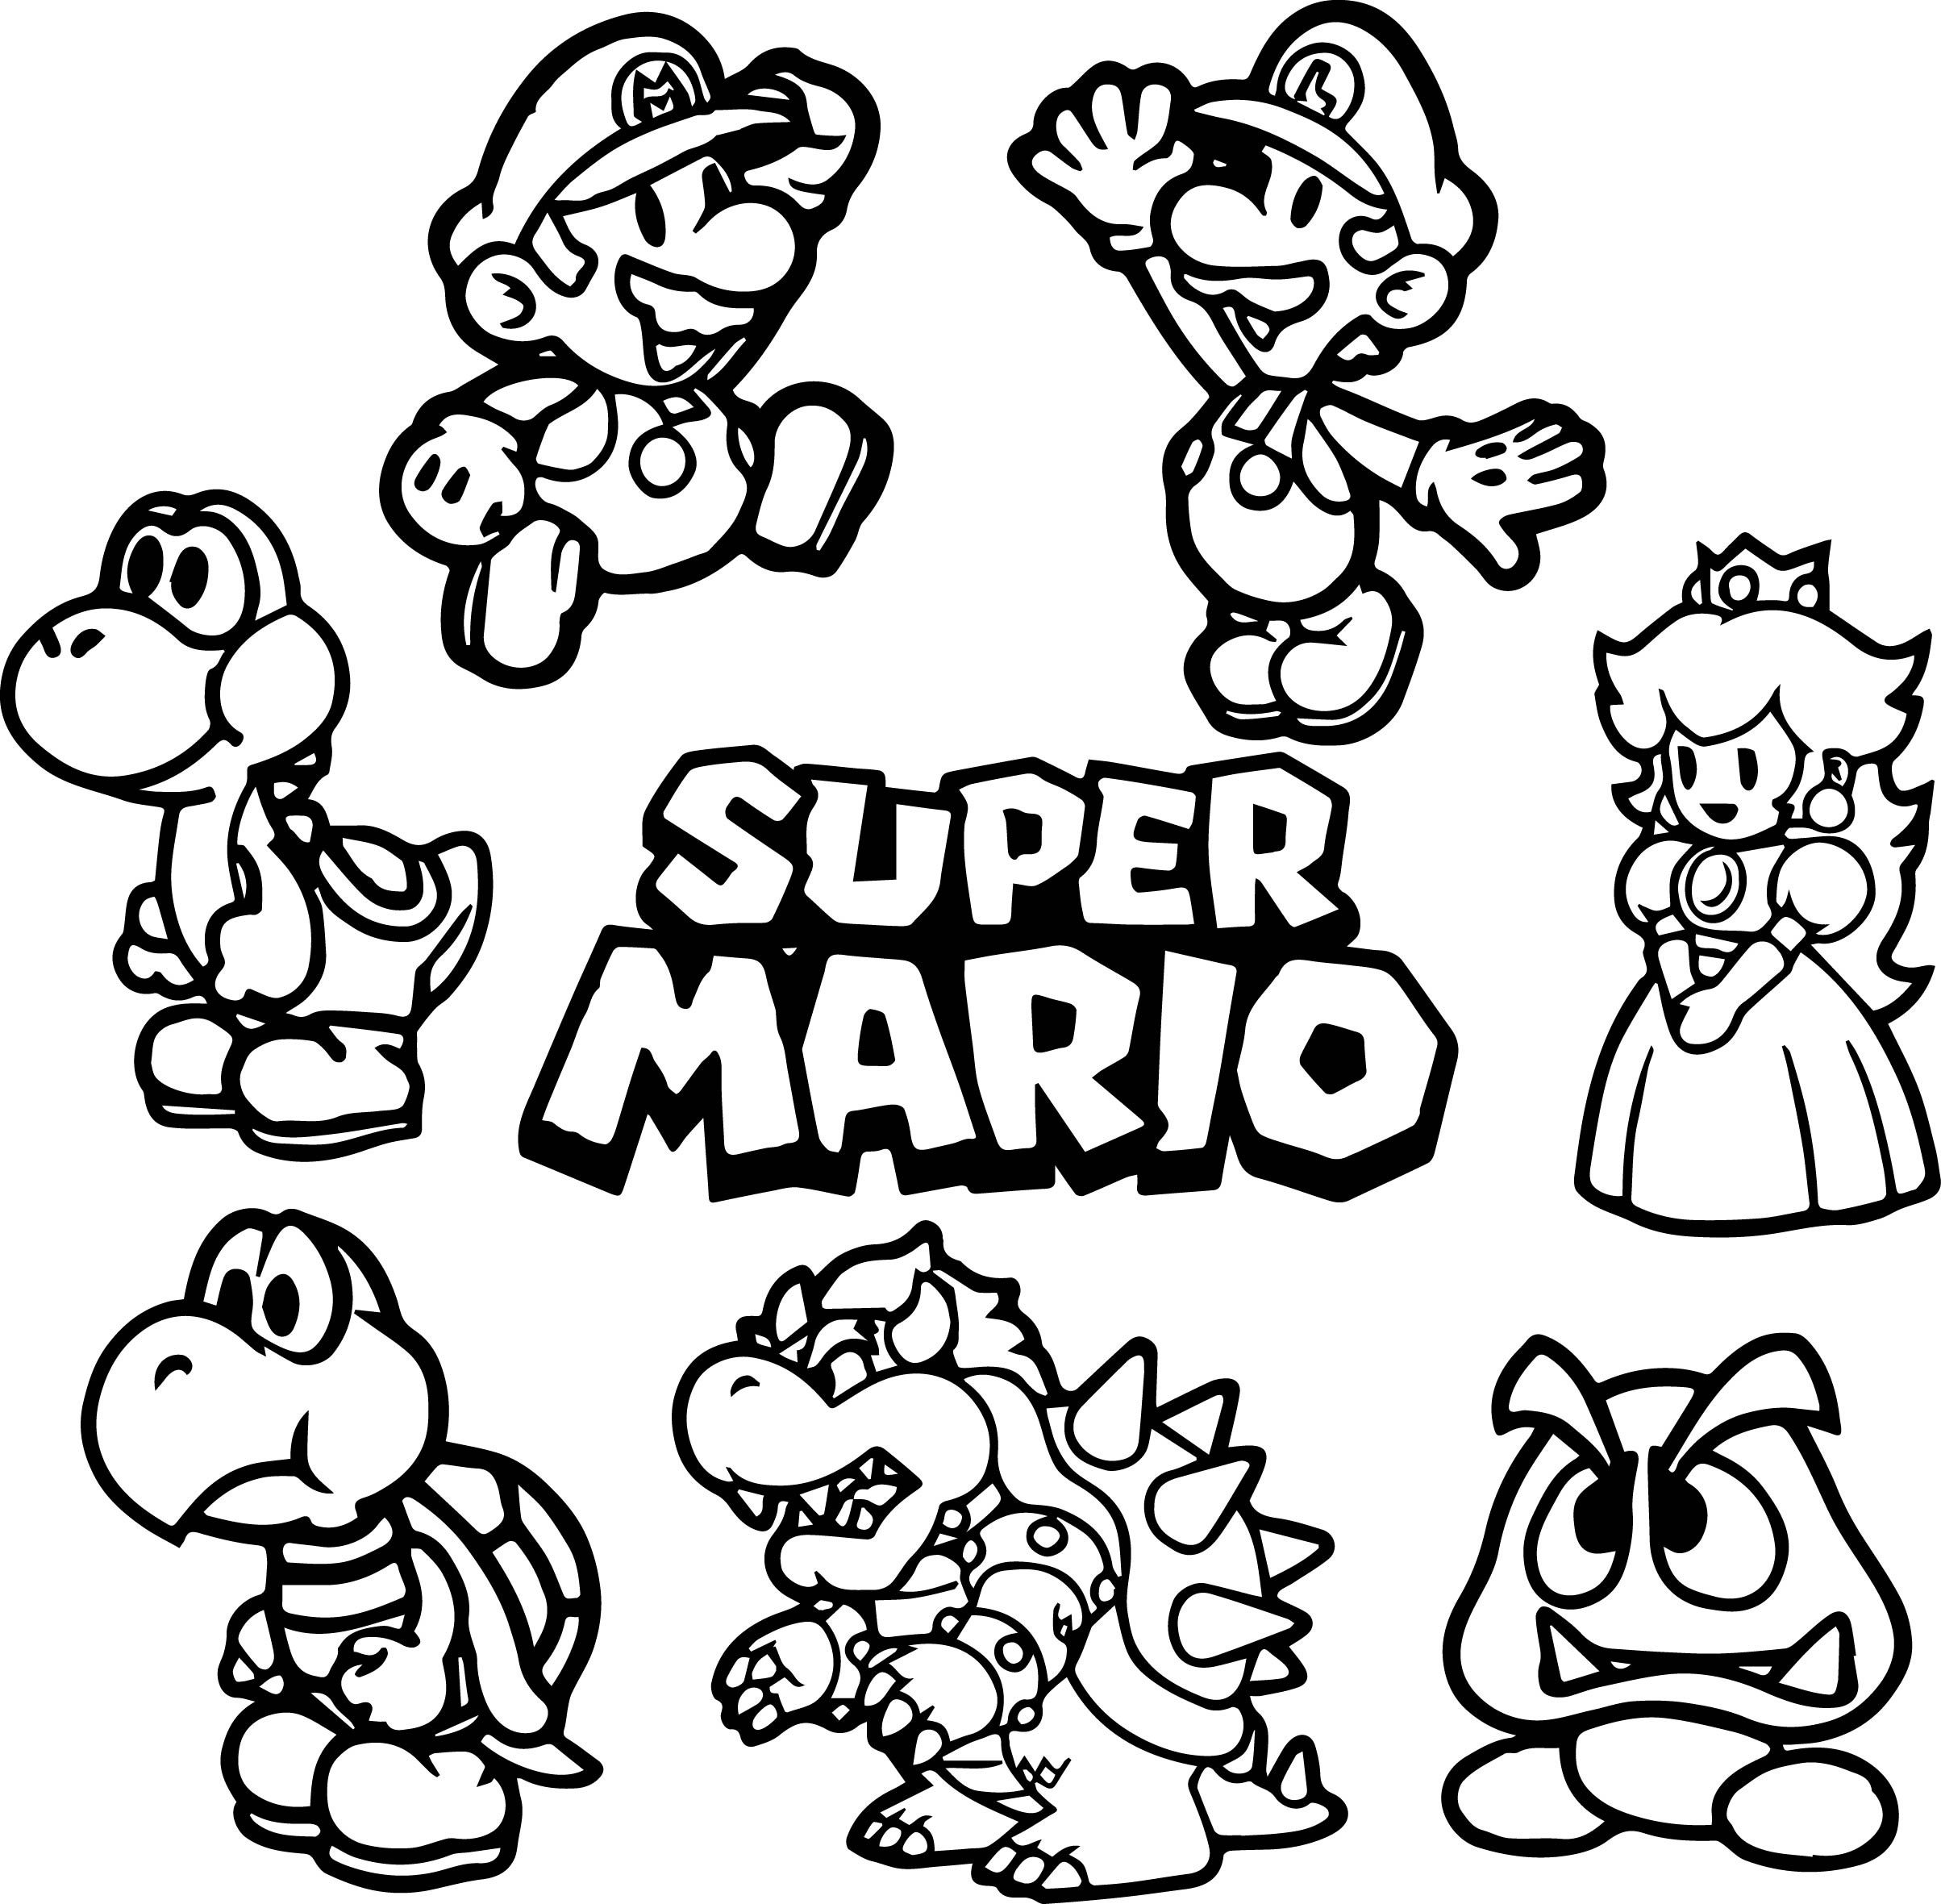 2407x2361 Mario Maker Coloring Pages Free Draw To Color